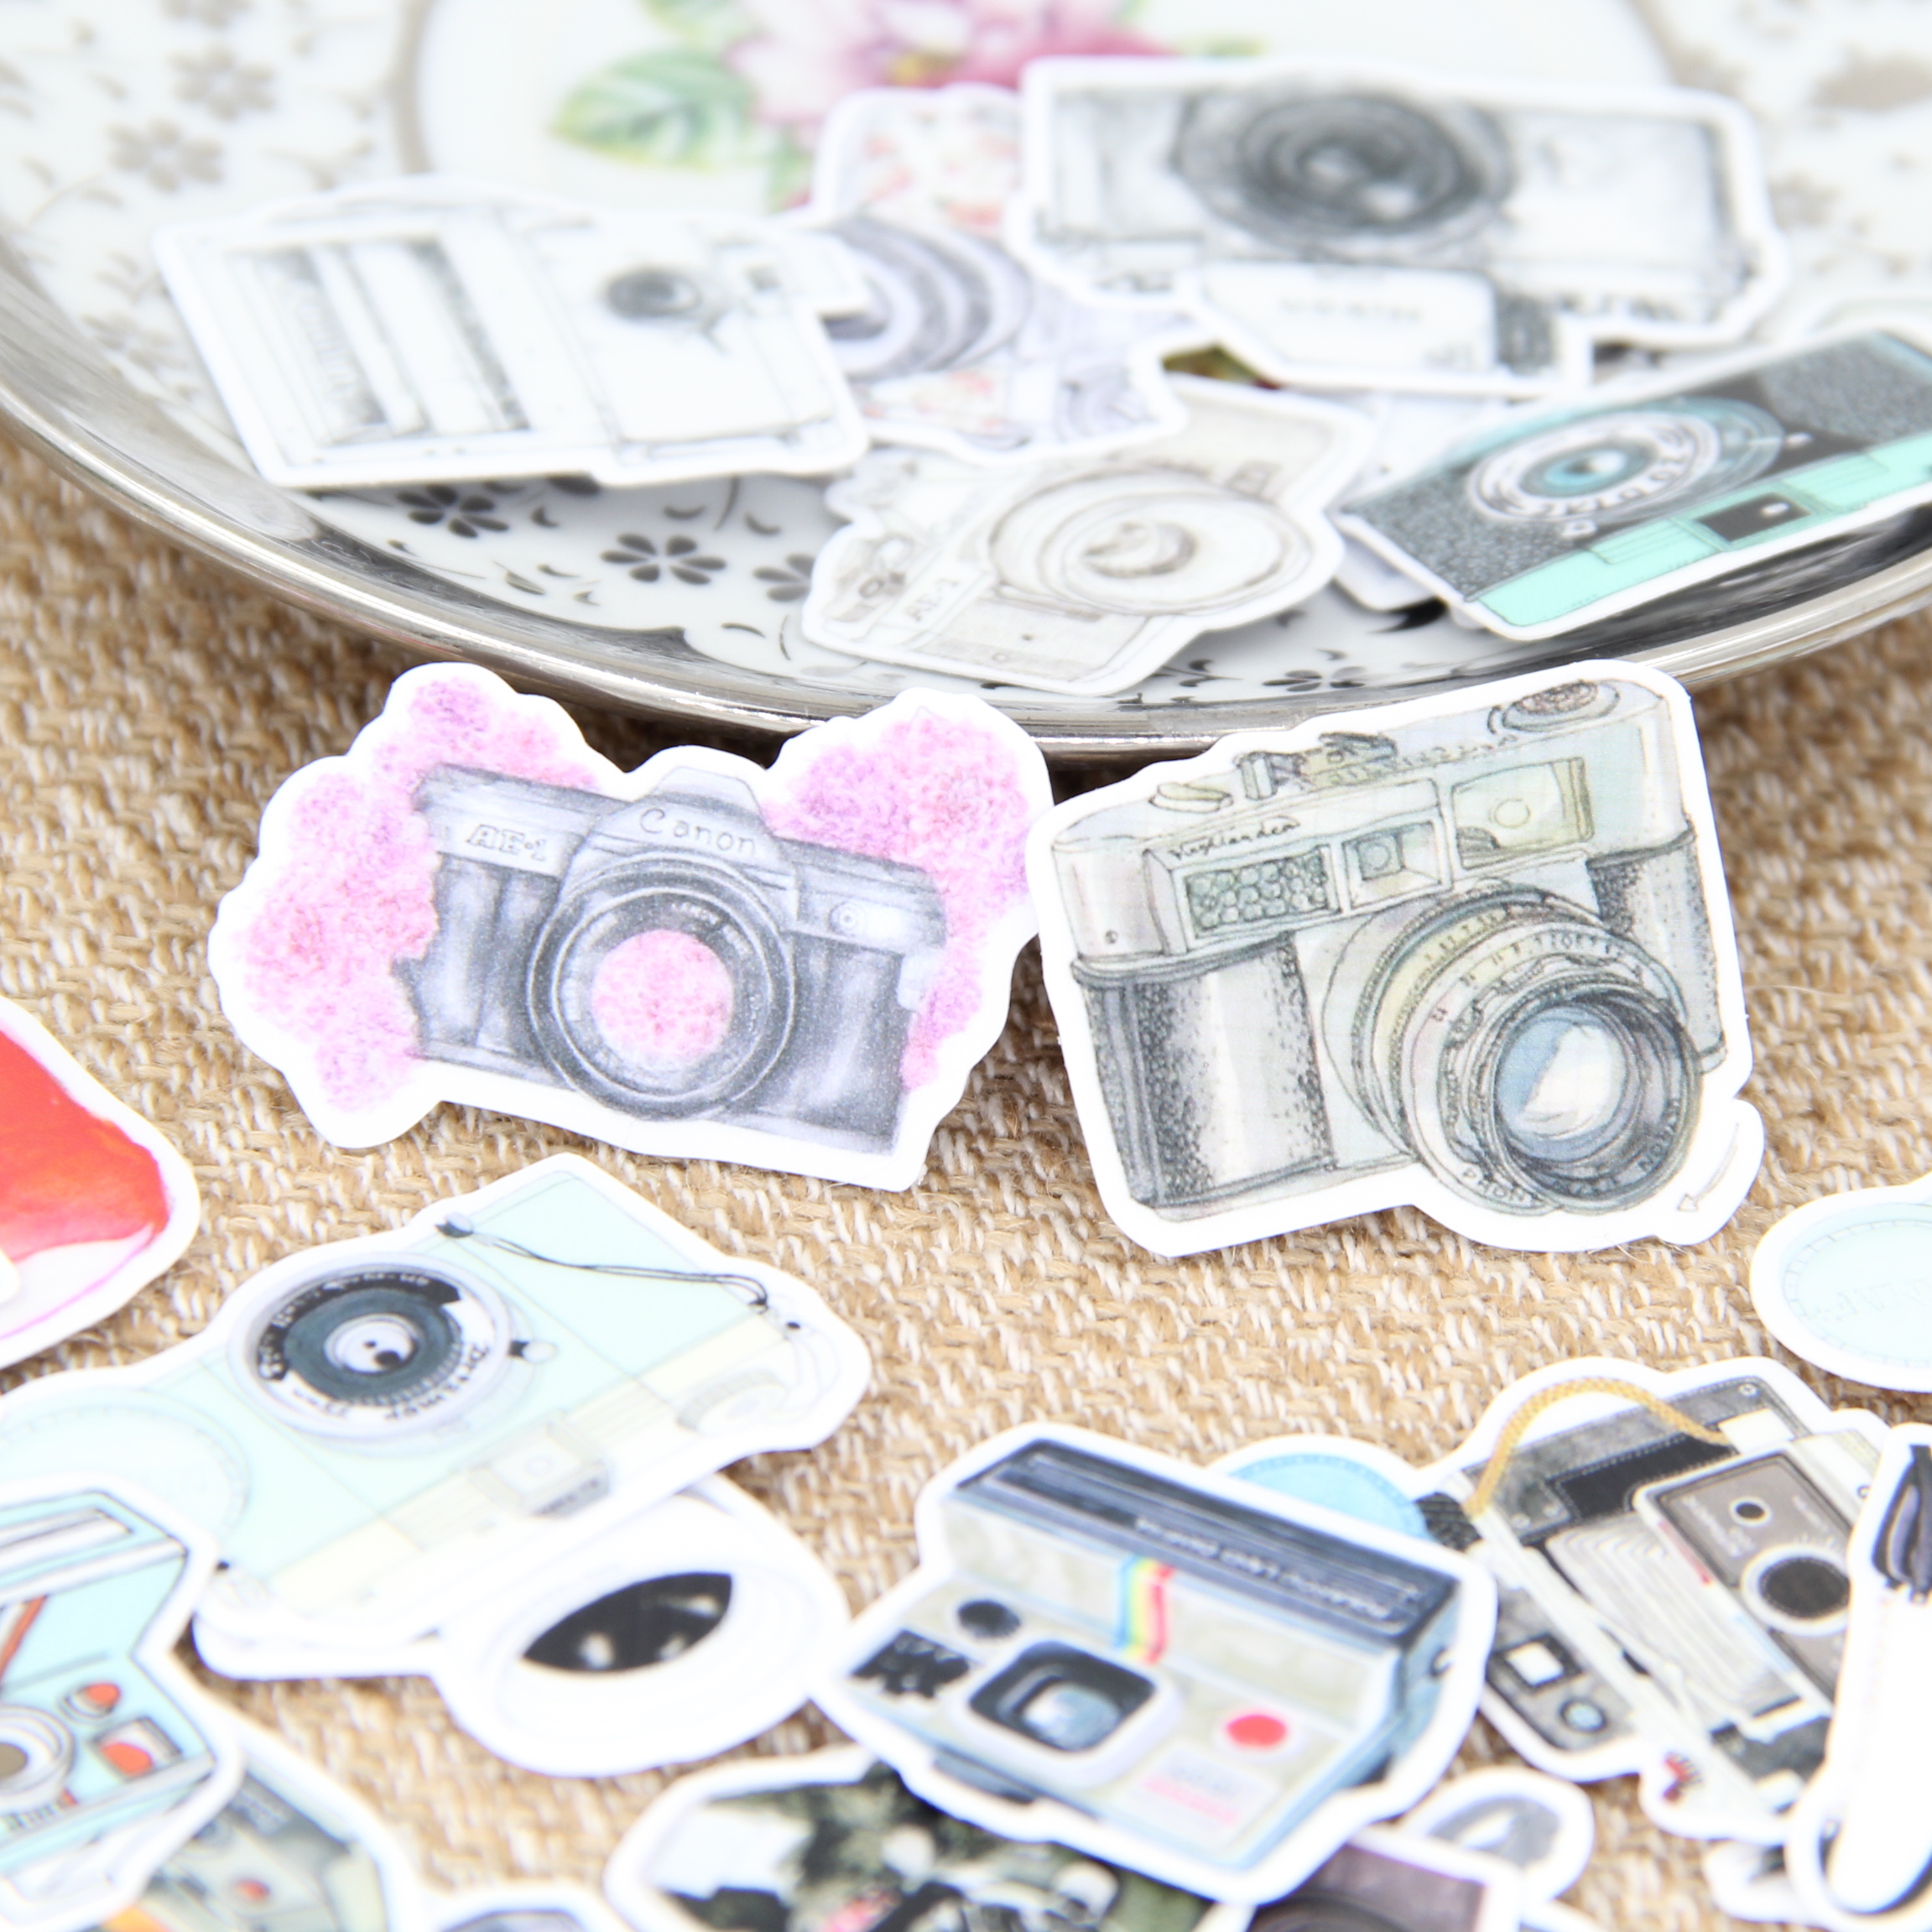 35Pcs/Set Vintage Camera Sticker DIY Craft Scrapbooking Album Junk Journal Planner Decorative Stickers